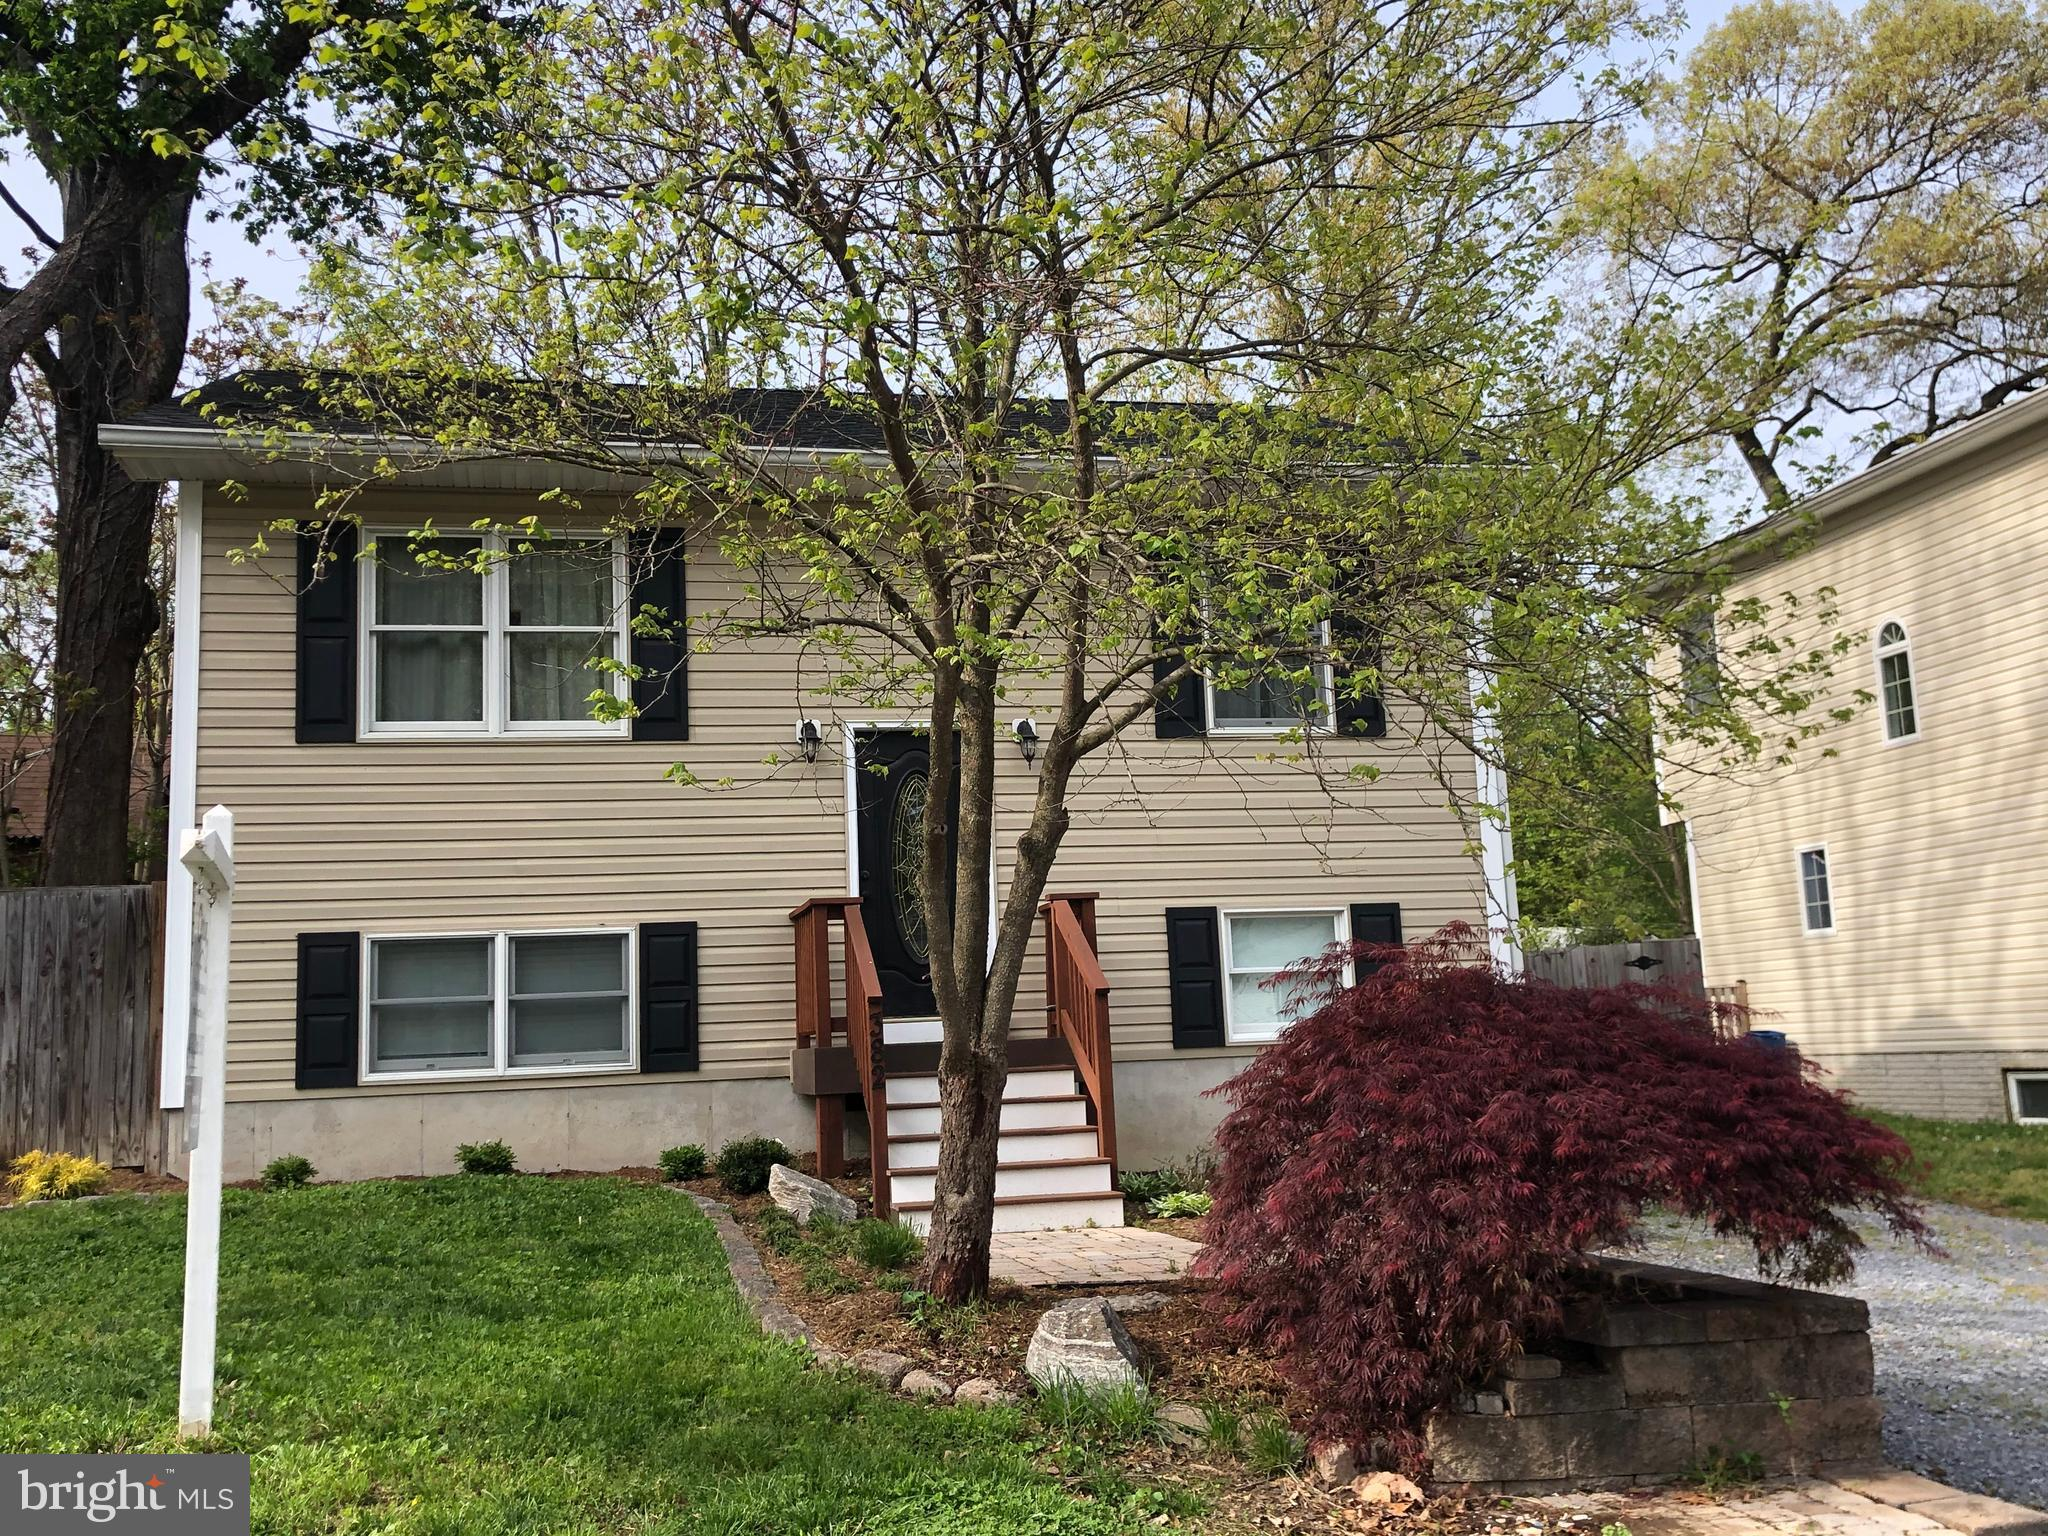 382 HOLLY TRAIL, CROWNSVILLE, Maryland 21032, 3 Bedrooms Bedrooms, ,2 BathroomsBathrooms,Single Family,For Sale,382 HOLLY TRAIL,MDAA414688